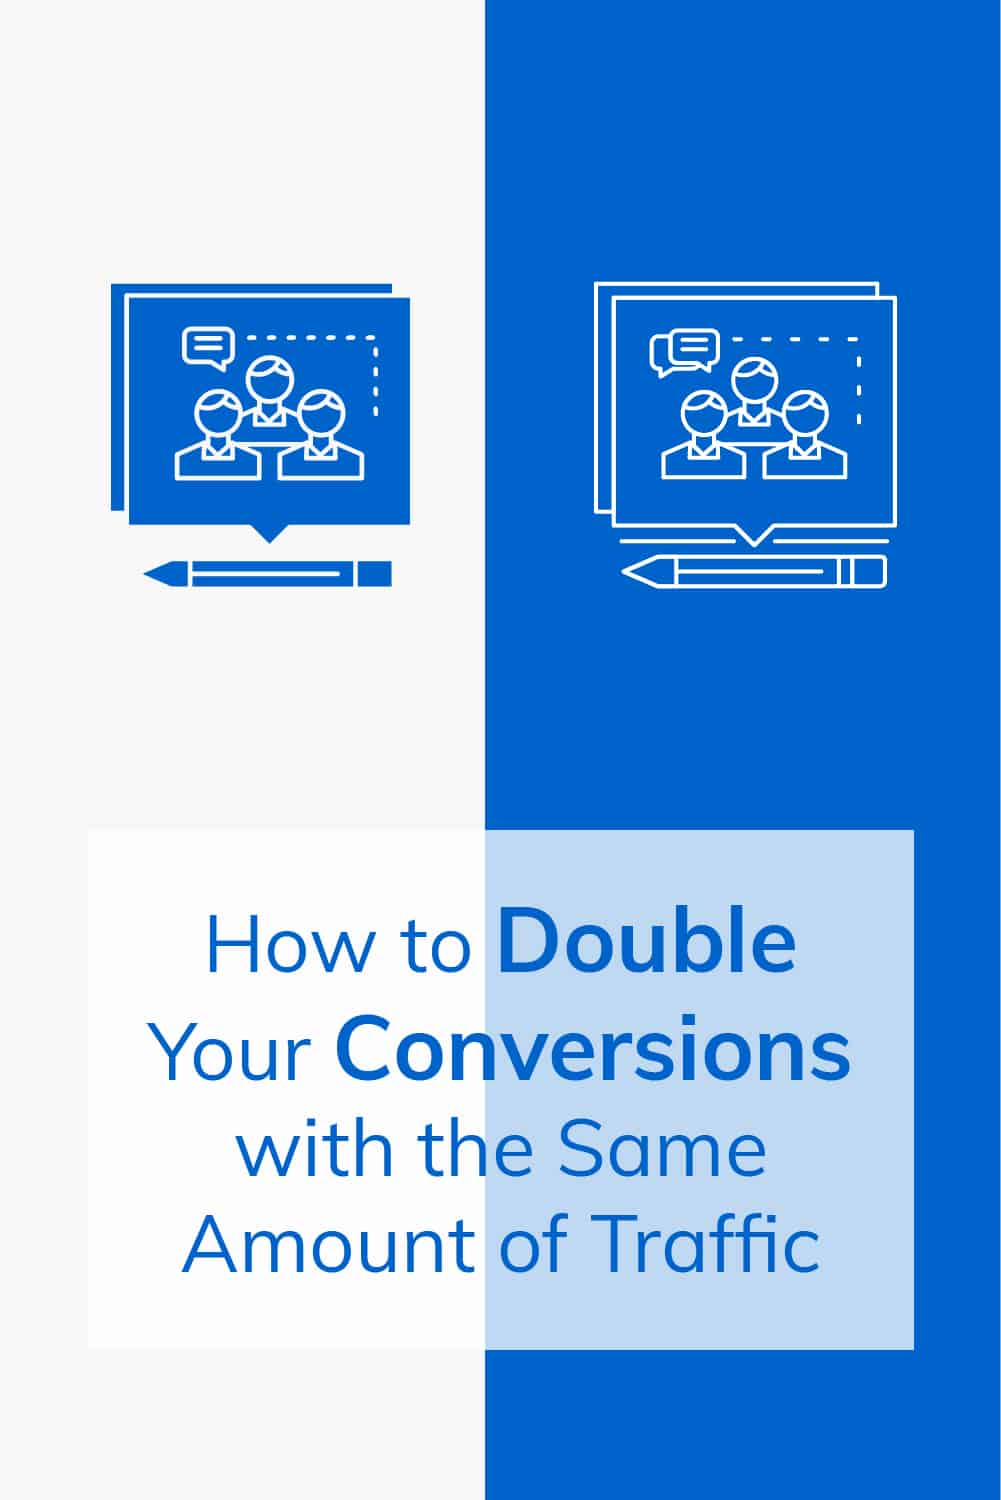 Traffic is important but it's not the amount of traffic you get that will determine the success of your business.Conversions are the name of the game! via @scopedesign